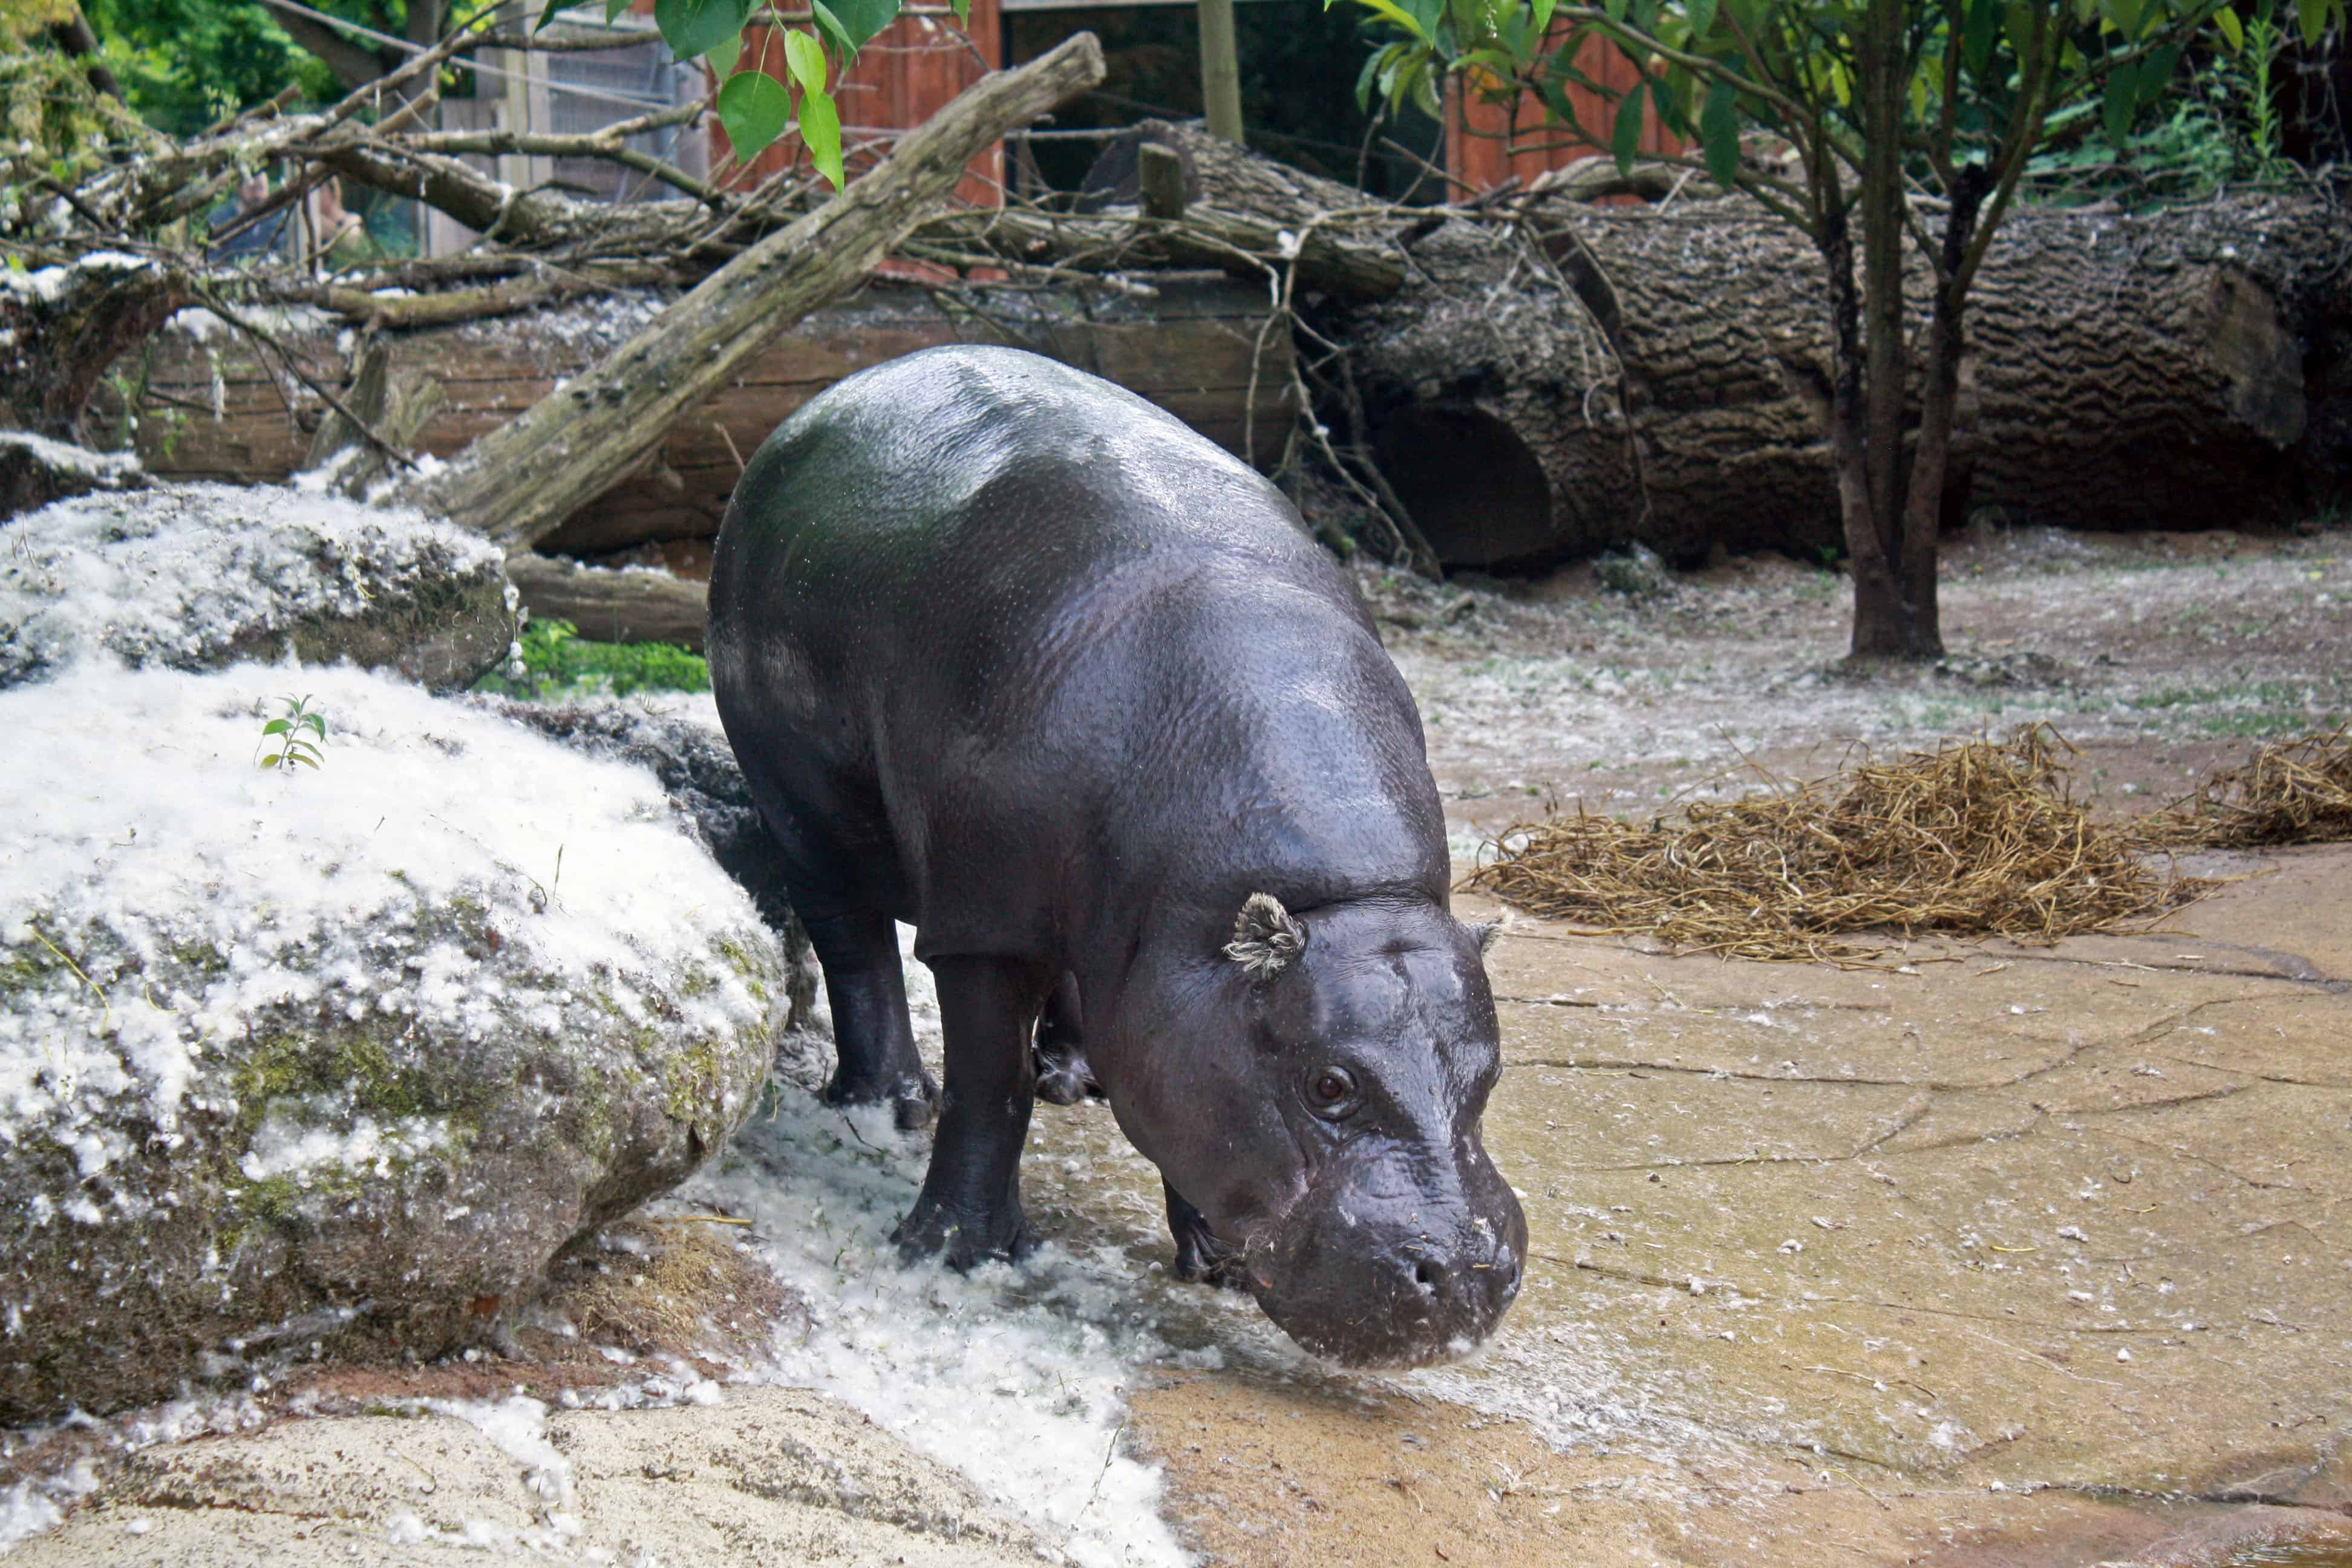 Pygmy Hippo at London Zoo